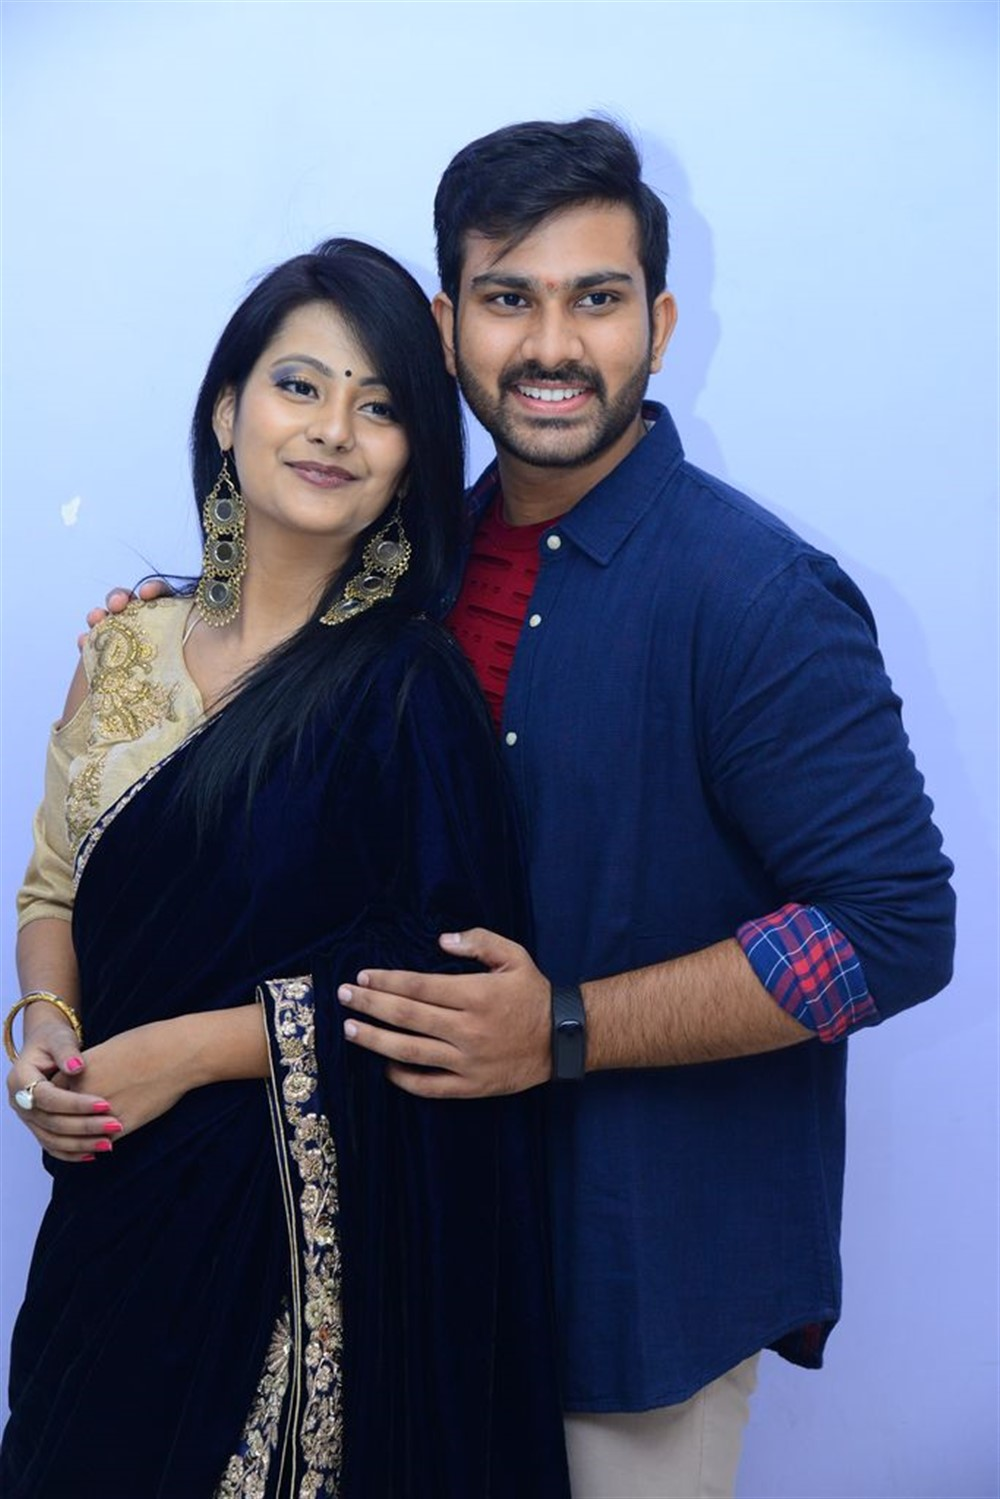 Shubangi Pant, Sree Karthikeya @ Itlu Anjali Movie Trailer Launch Stills